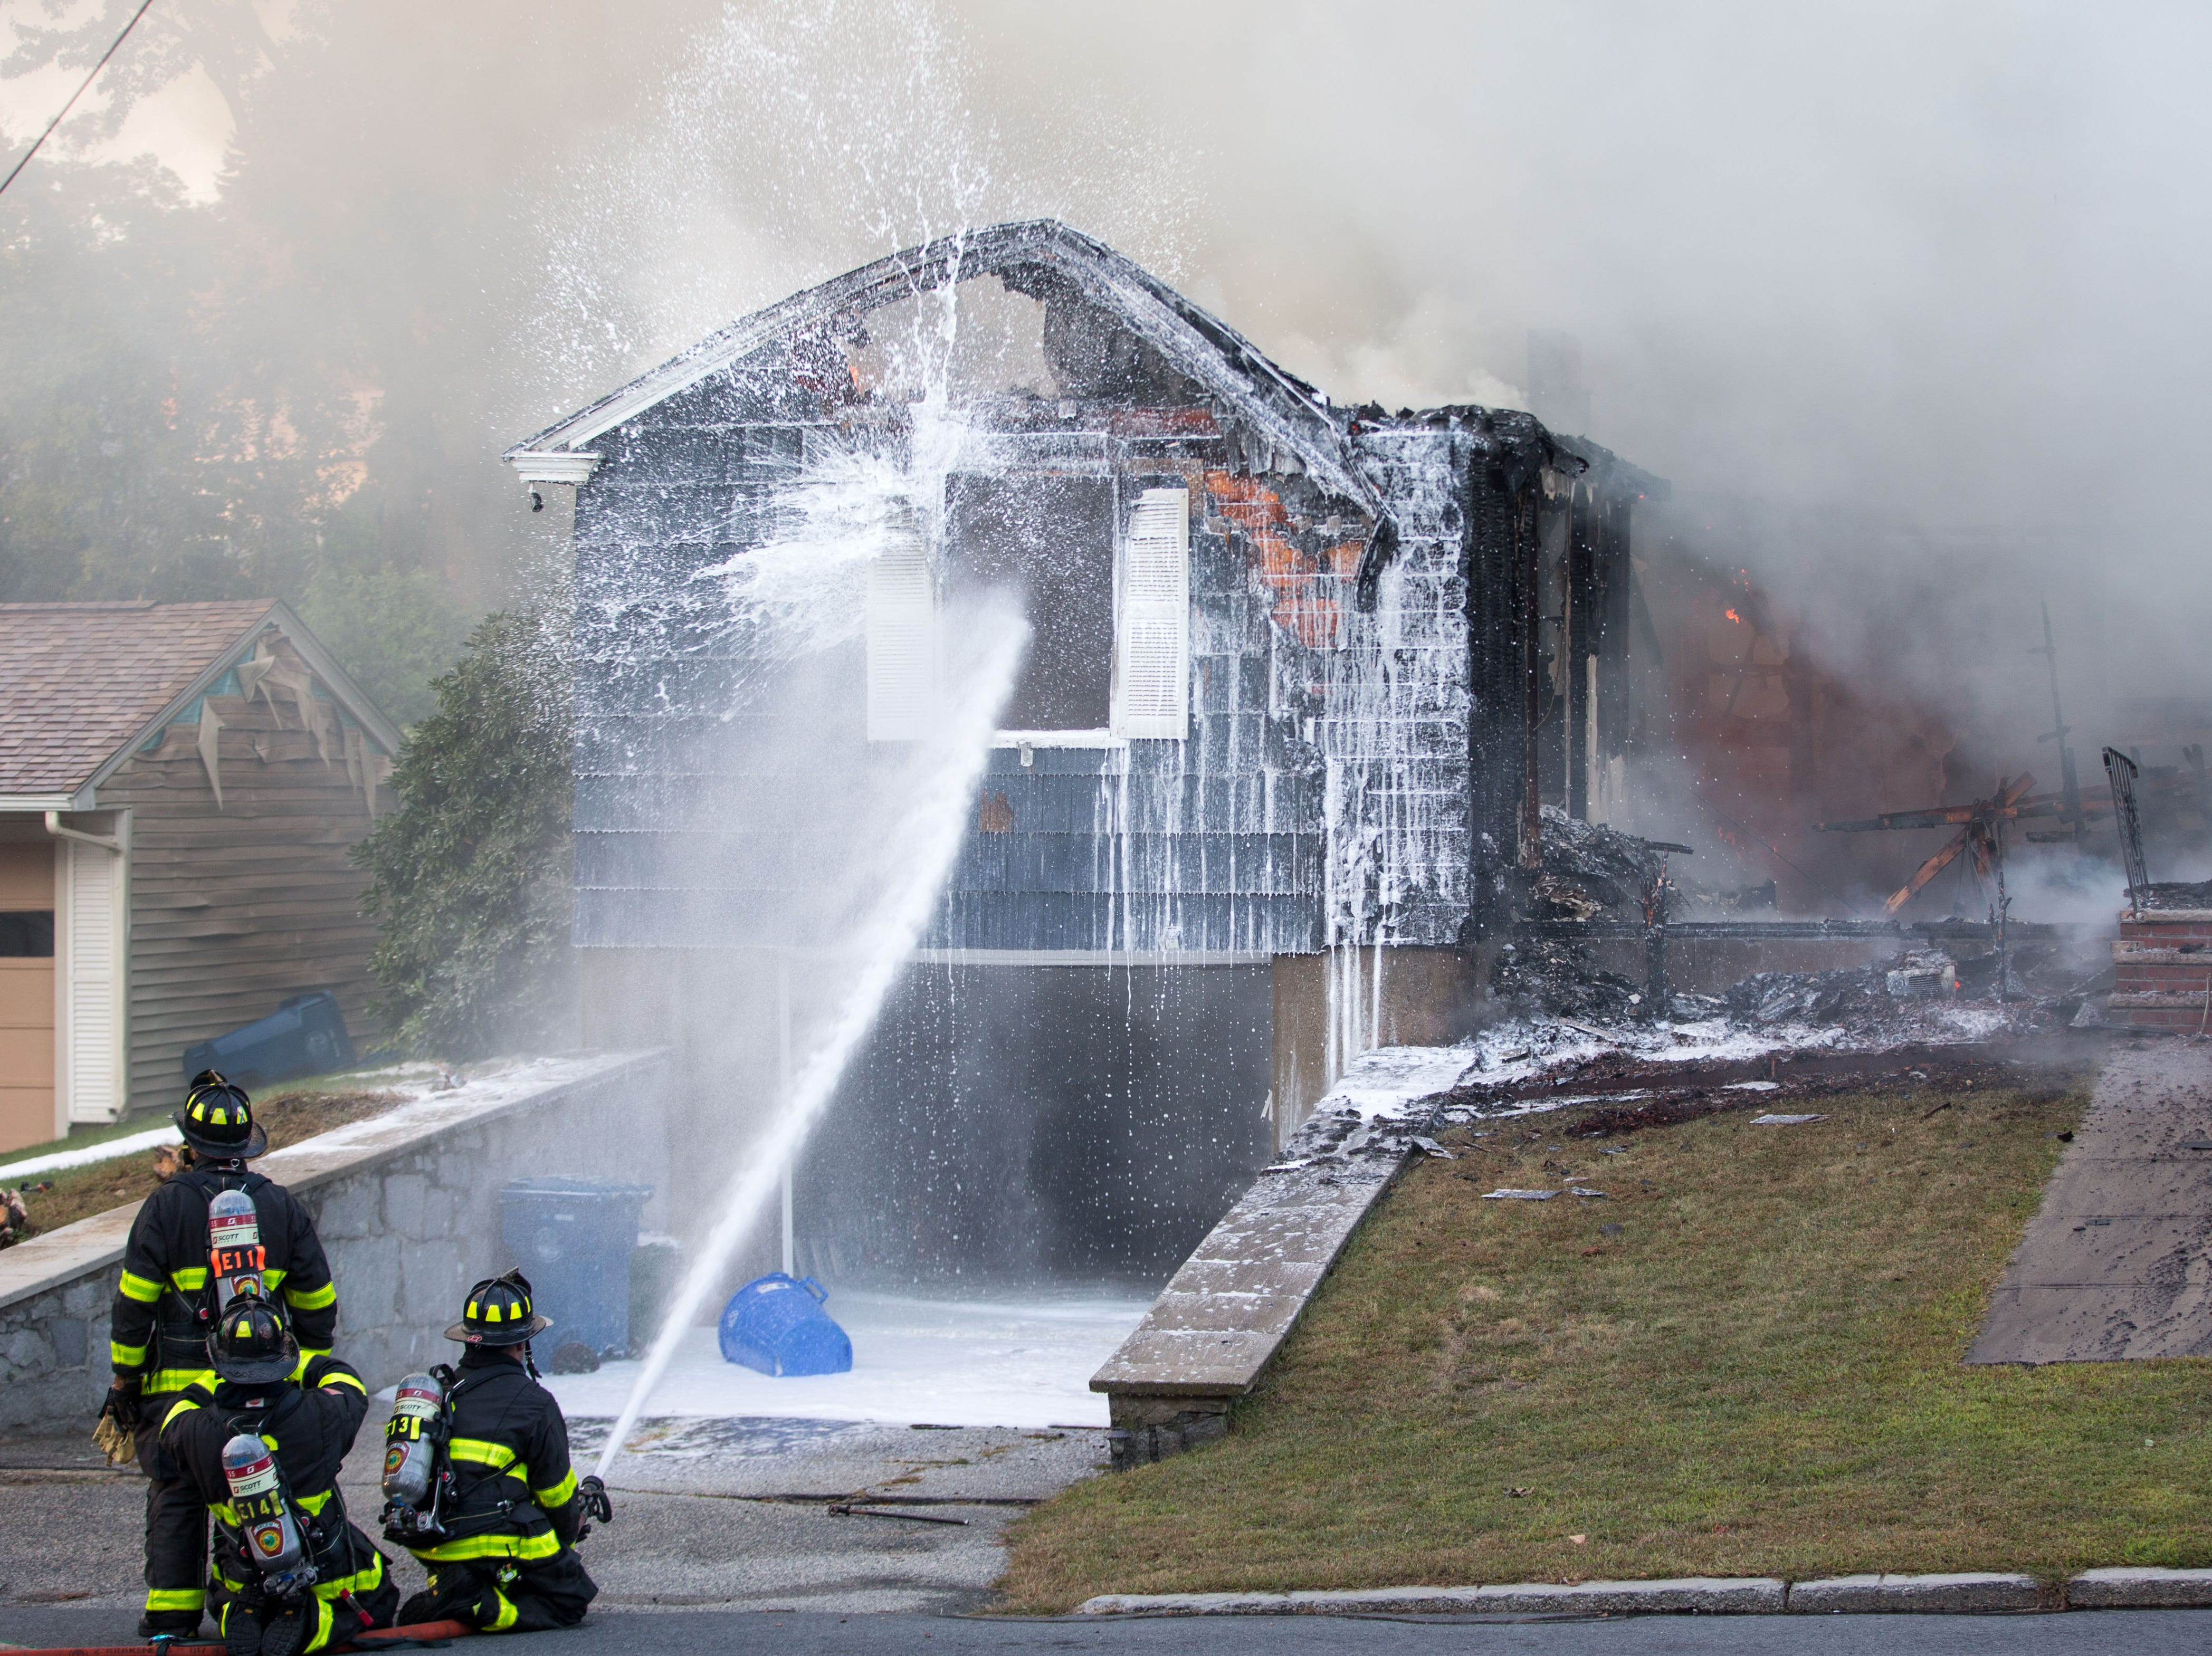 Firefighters work to extinguish a fire caused by over pressurized gas lines on Sept. 13, 2018, in Lawrence, Mass. Dozens of fires broke out in Lawrence, North Andover and Andover because of the gas lines.